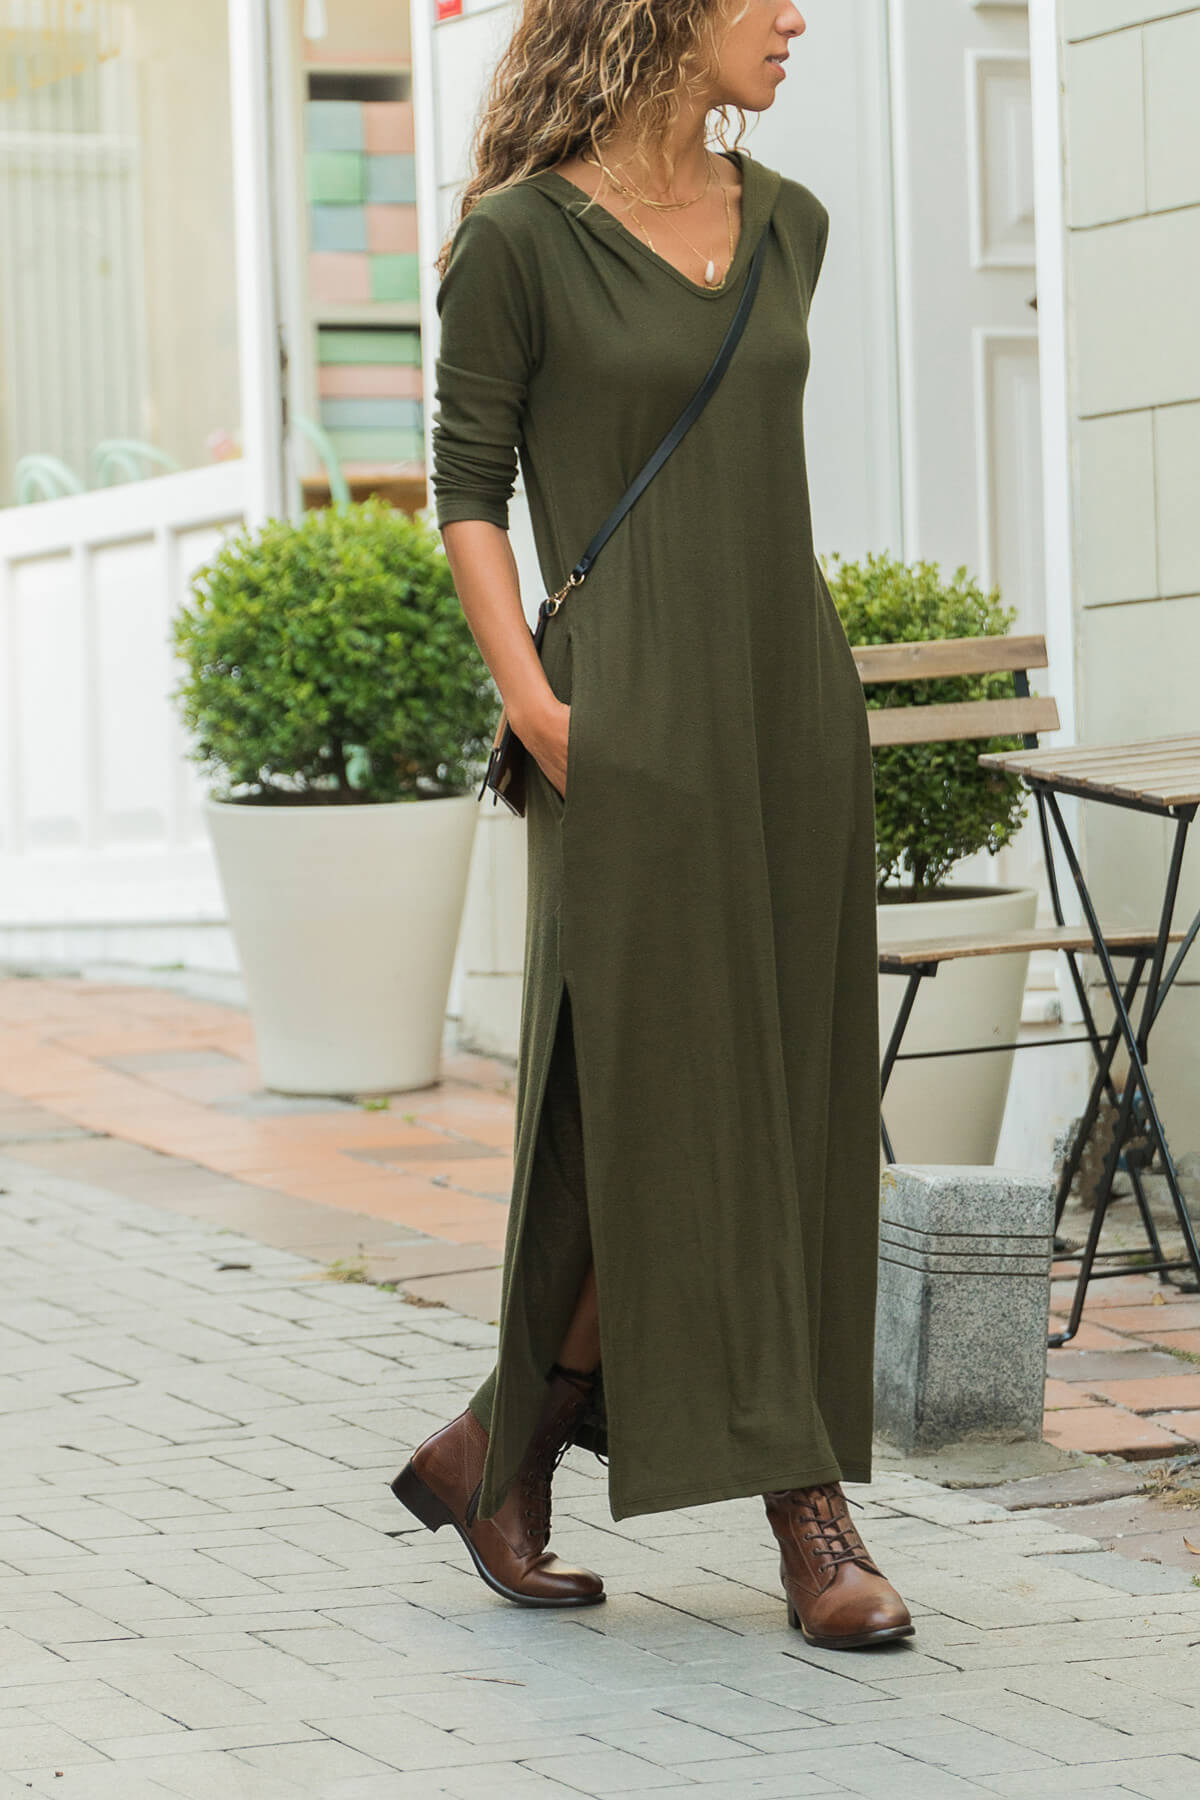 bohoan style solid army green split long sleeve hooded woman dresses spring autumn casual loose ankle length female dresses